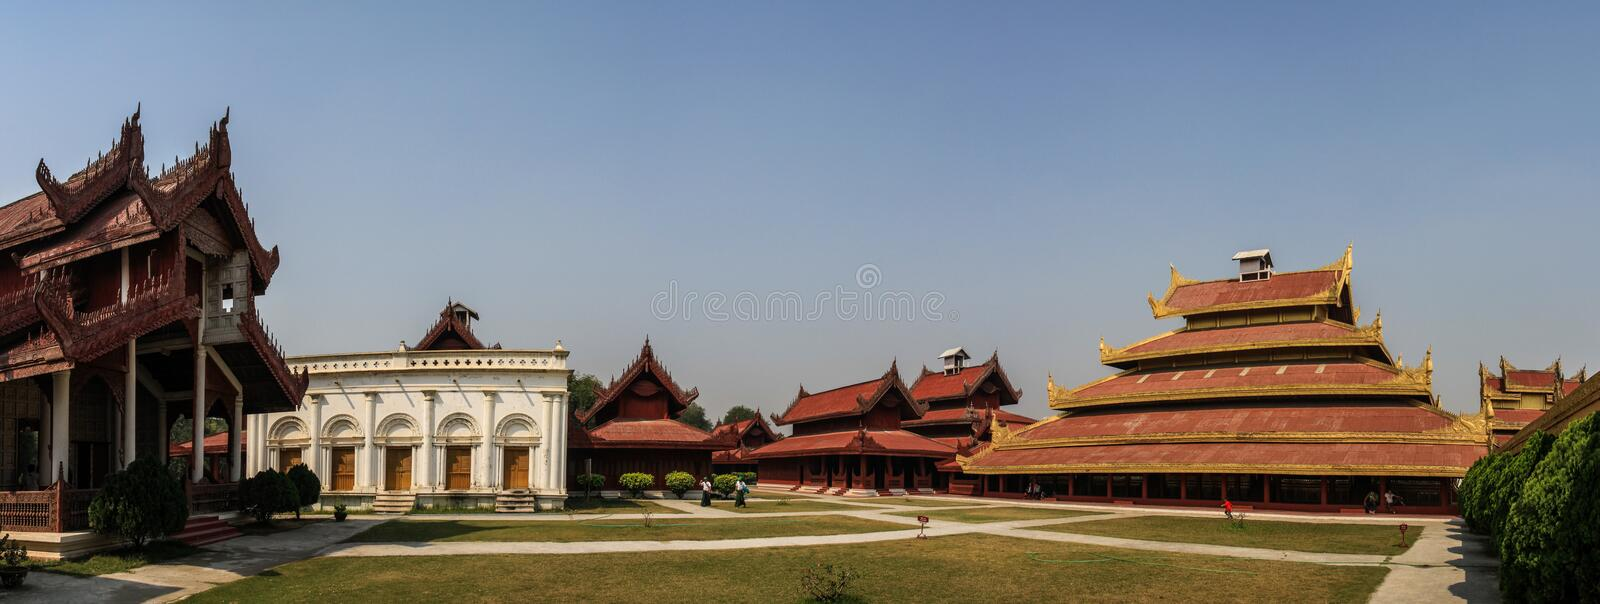 Panoramic view of the Royal Palace in Mandalay, Mandalay Region, Myanmar,. The Mandalay Palace located in Mandalay, Myanmar, is the last royal palace of the last stock image